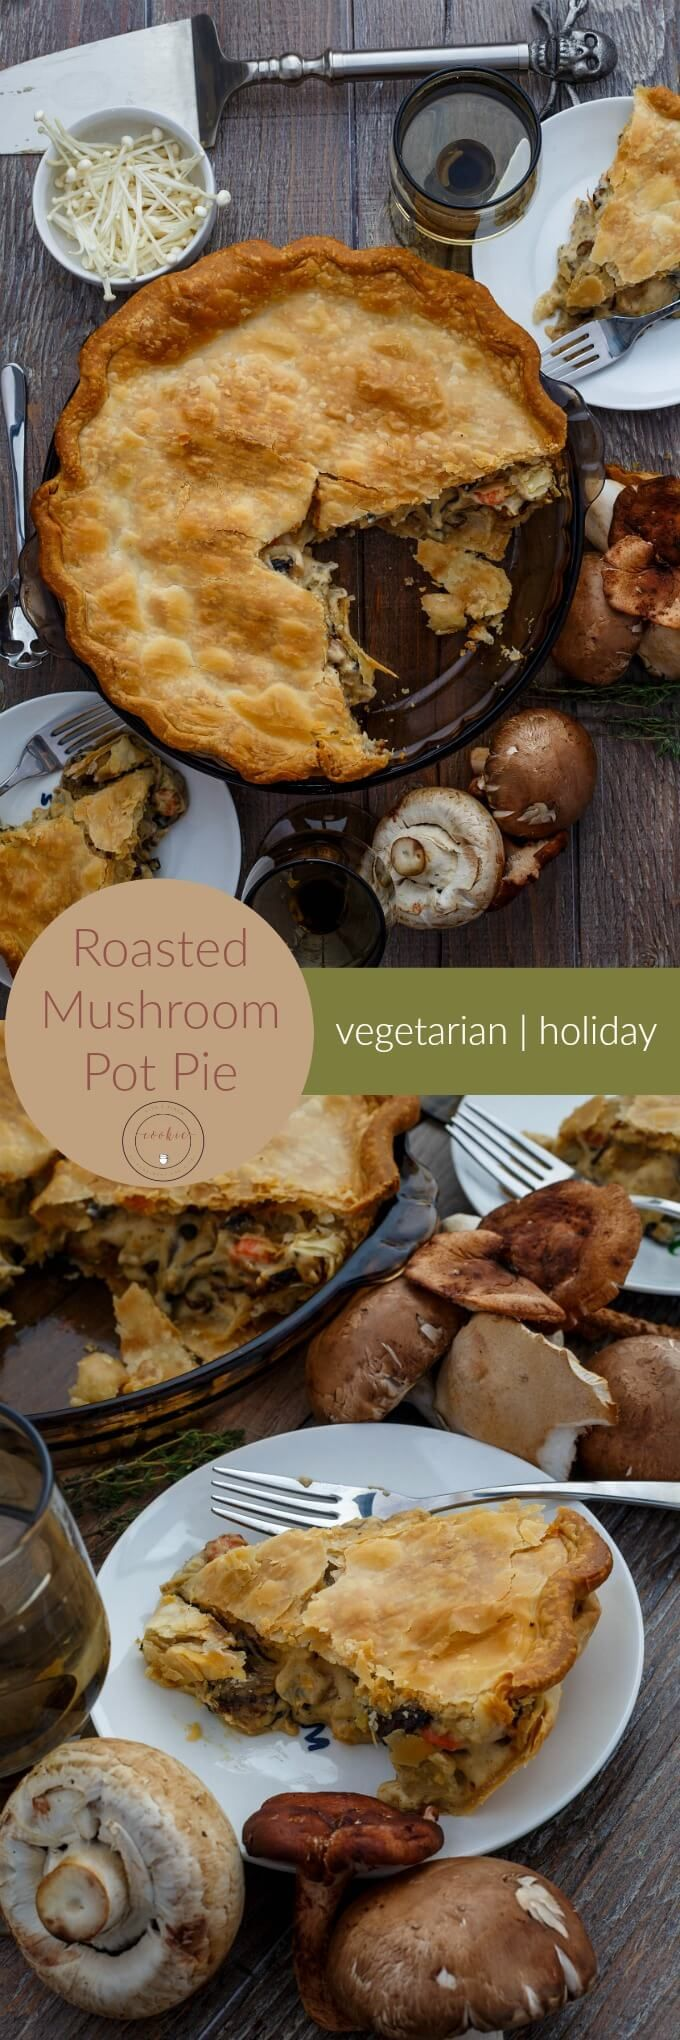 Roasted Mushroom Pot Pie   http://thecookiewriter.com   @thecookiewriter   #mushrooms #blogsgivingdinner   A completely vegetarian meal that is so hearty, even the biggest of meat-eaters will enjoy it!